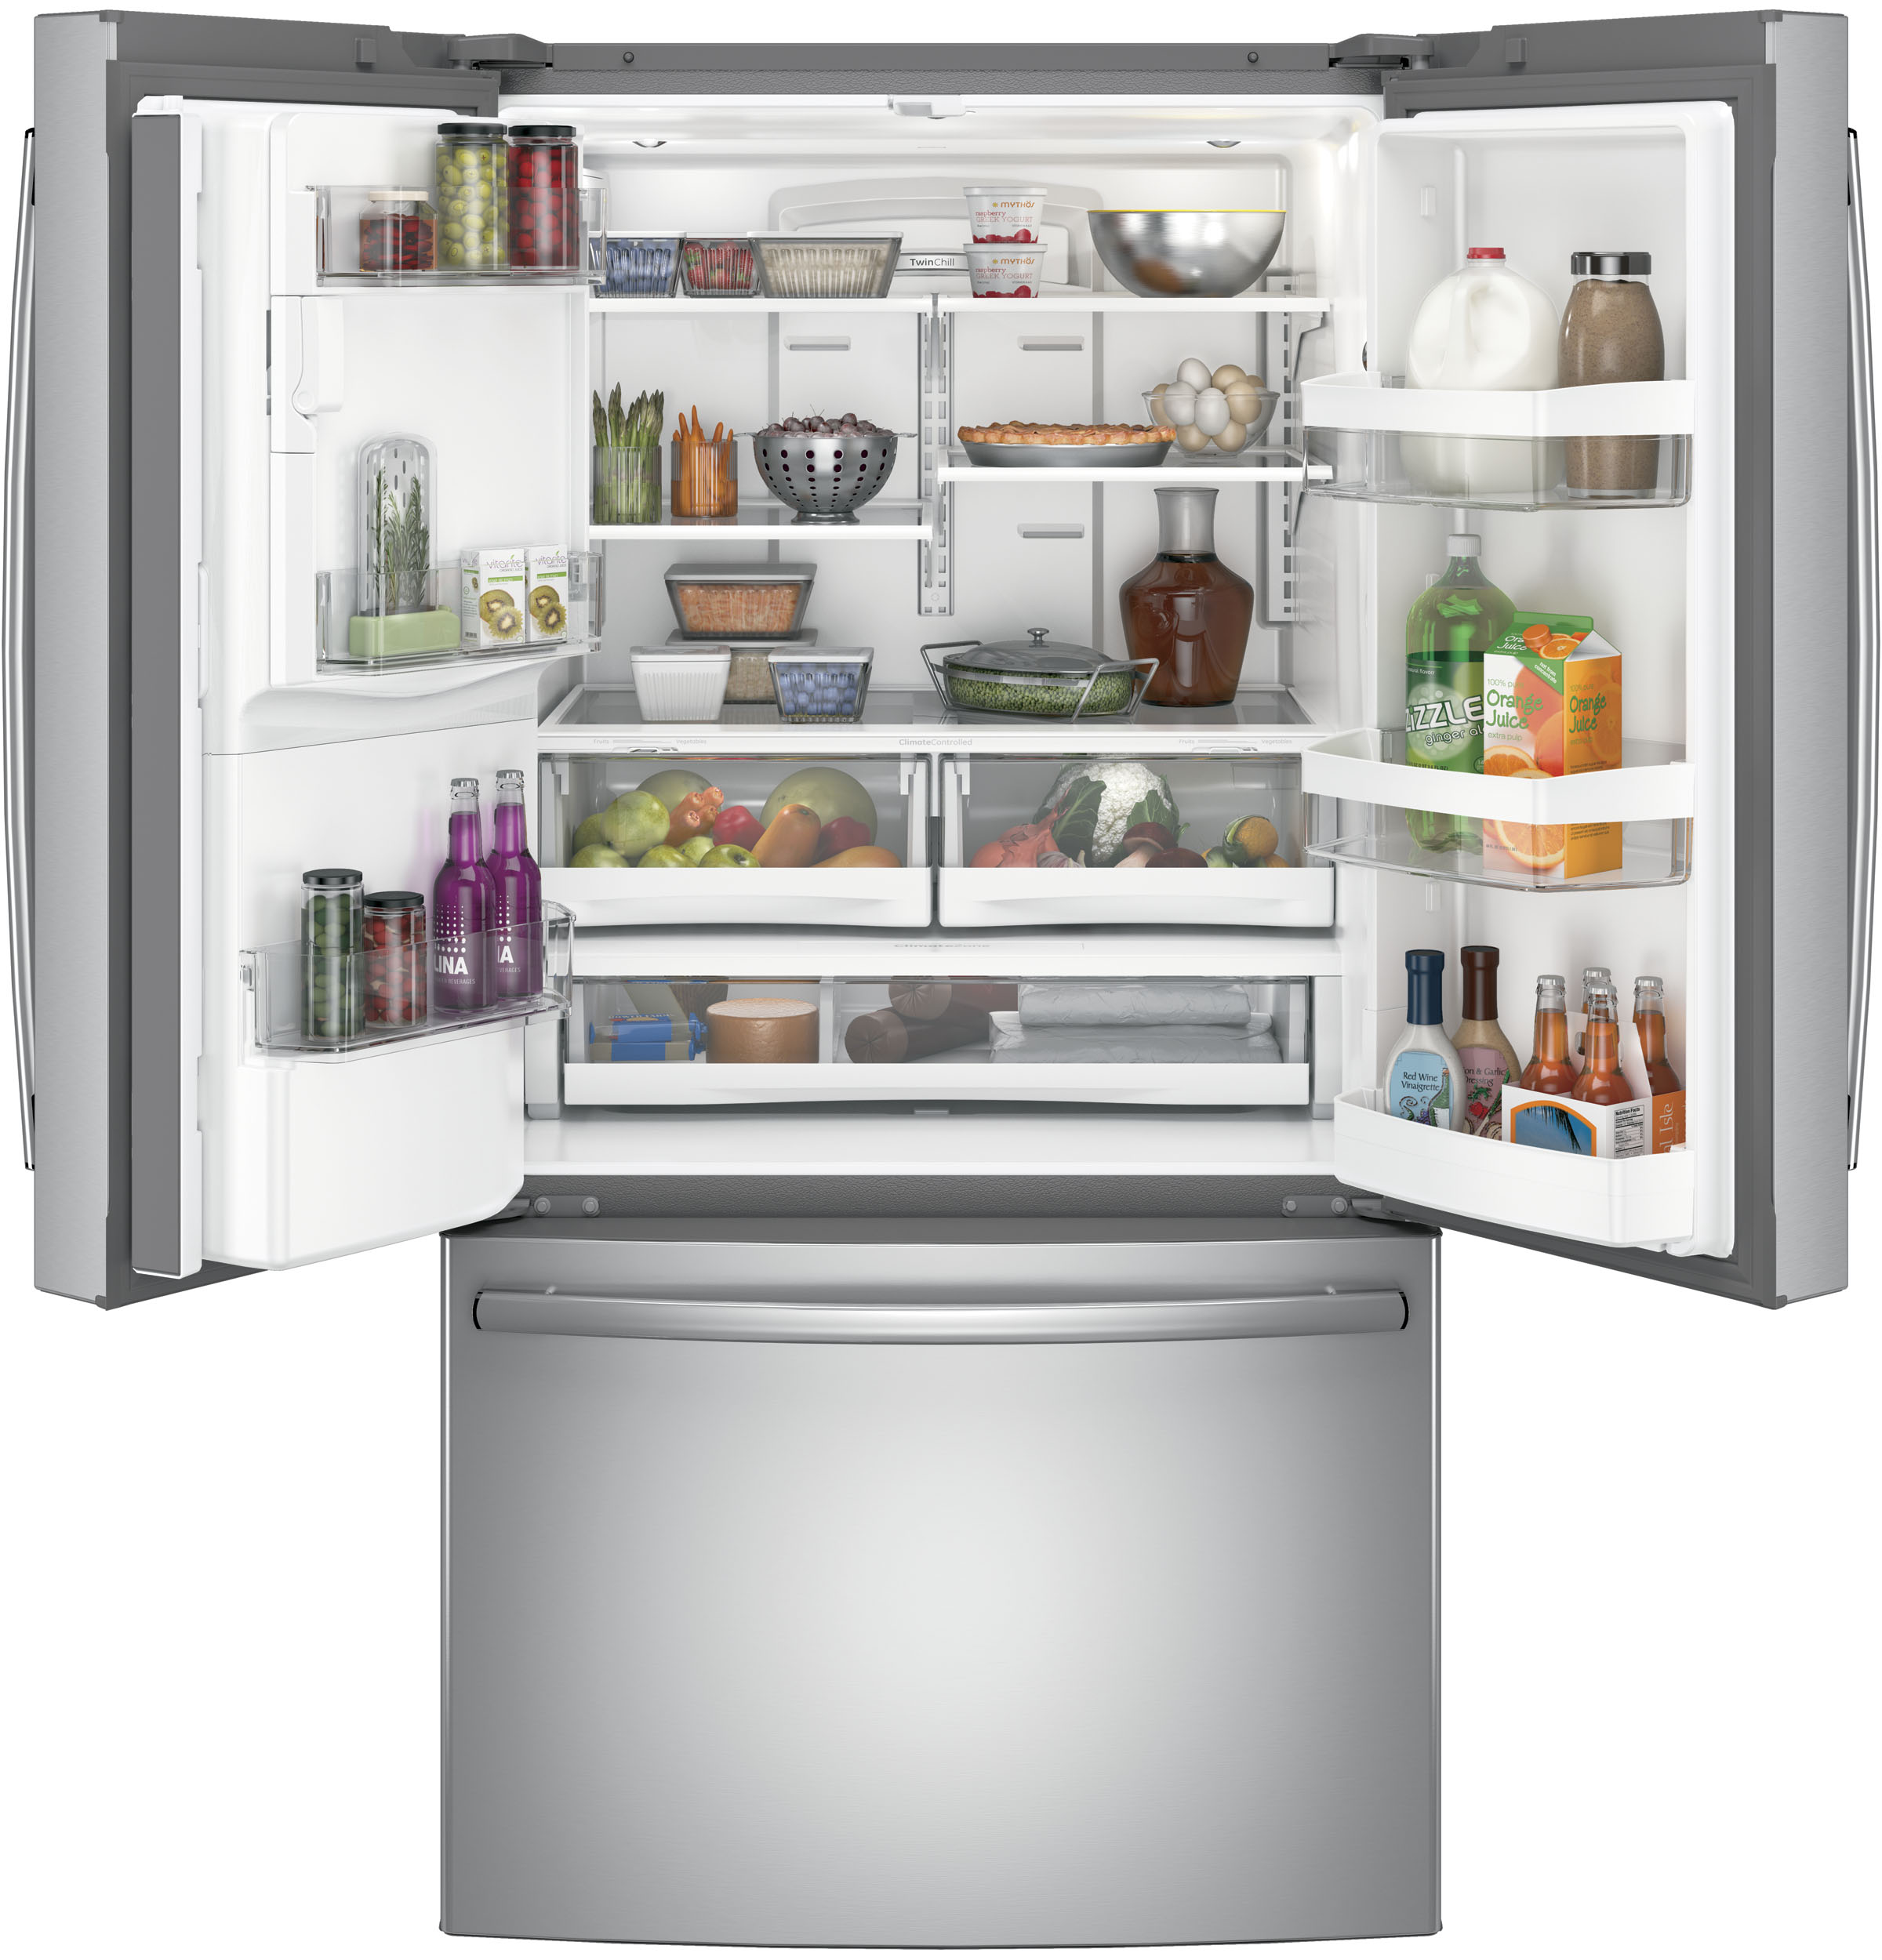 Model: GFS26GSNSS | GE® 25.8 Cu. Ft. French-Door Refrigerator